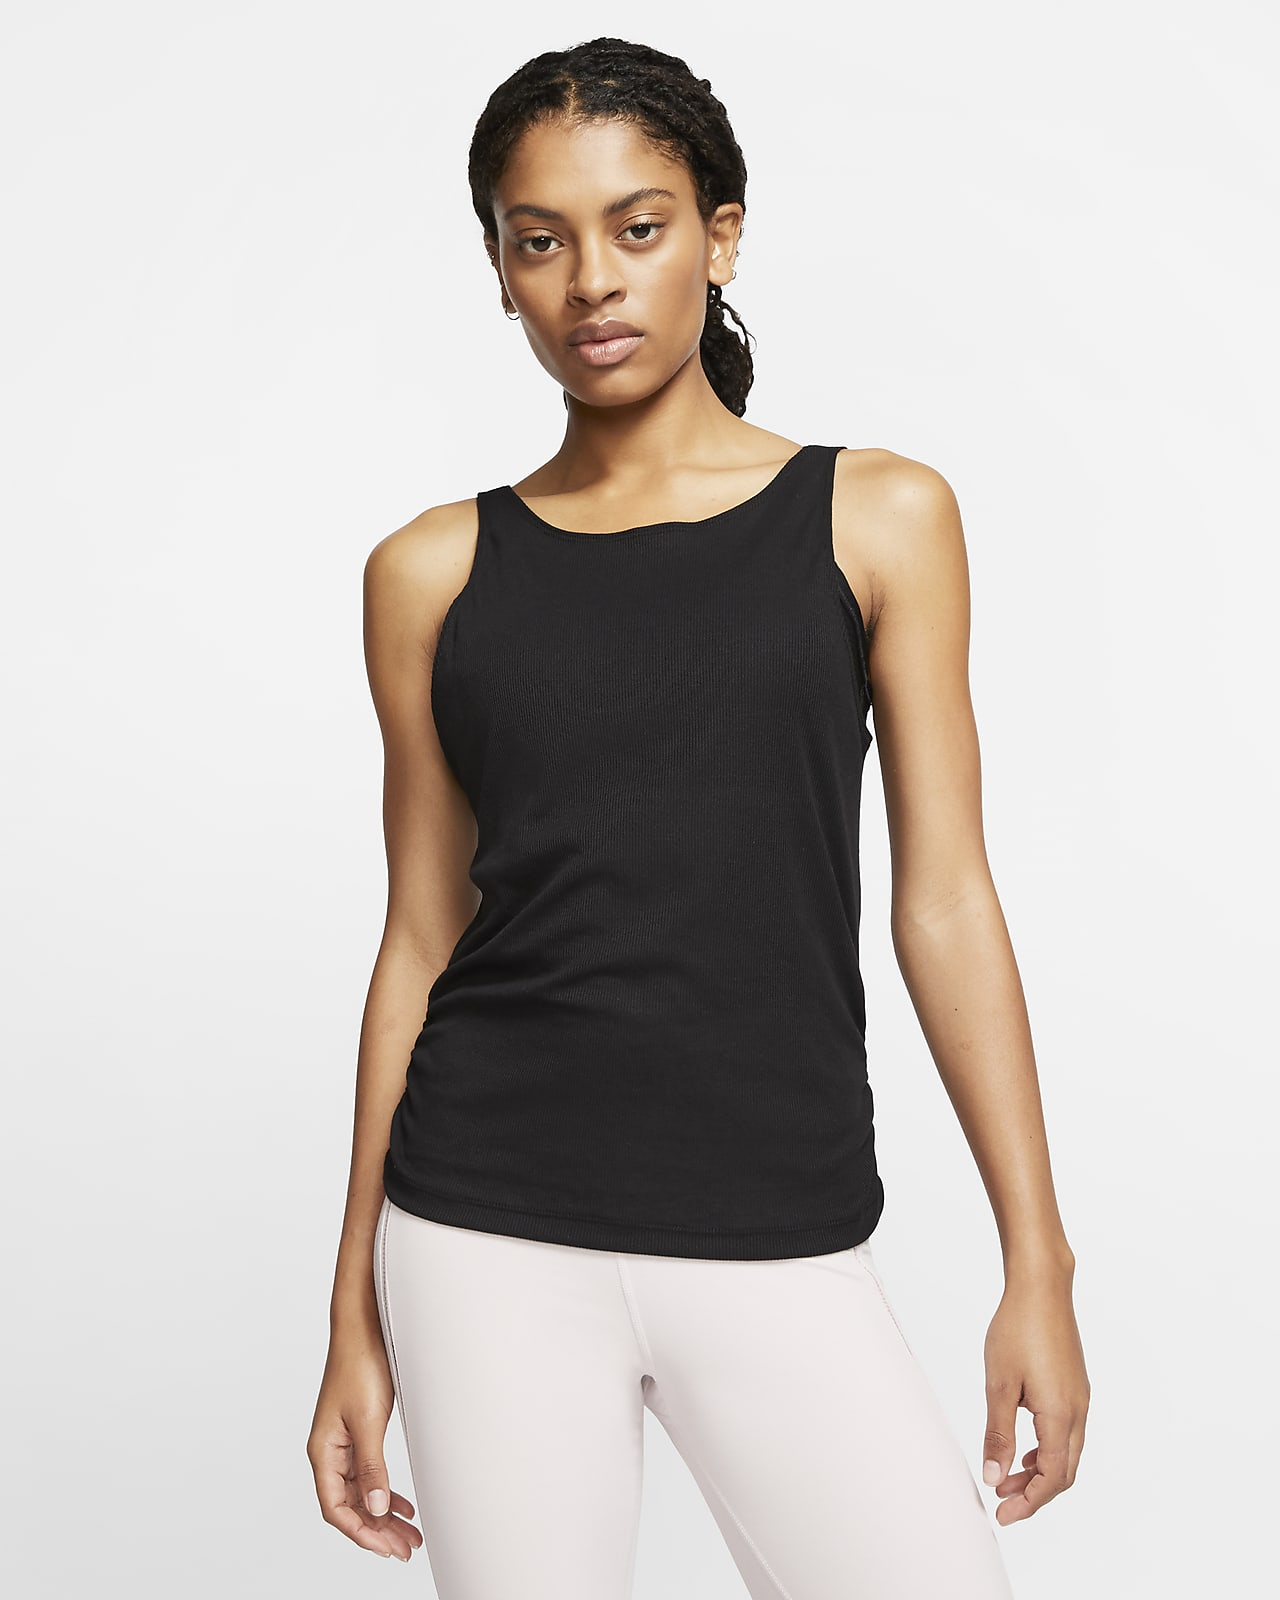 Nike Yoga Women's Ruched Tank